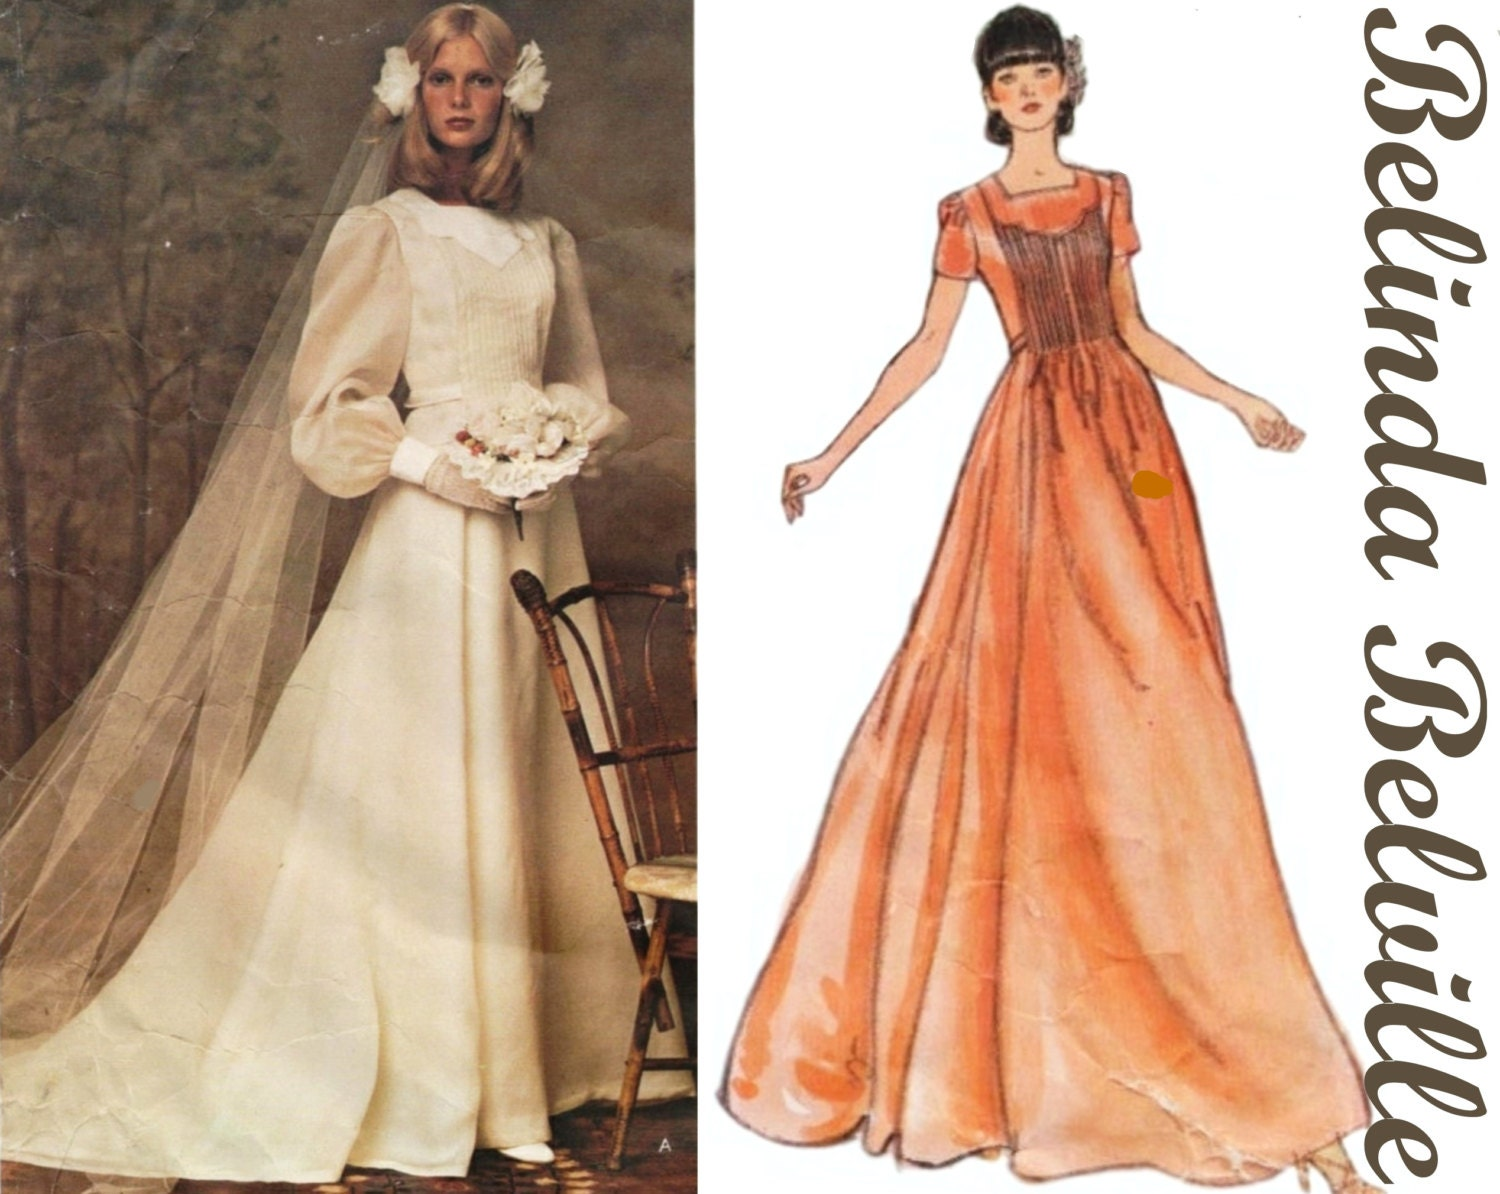 Vintage wedding gown vogue 1155 sz 10 b 325 belinda bellville 70s sold by theperfectpattern ombrellifo Images